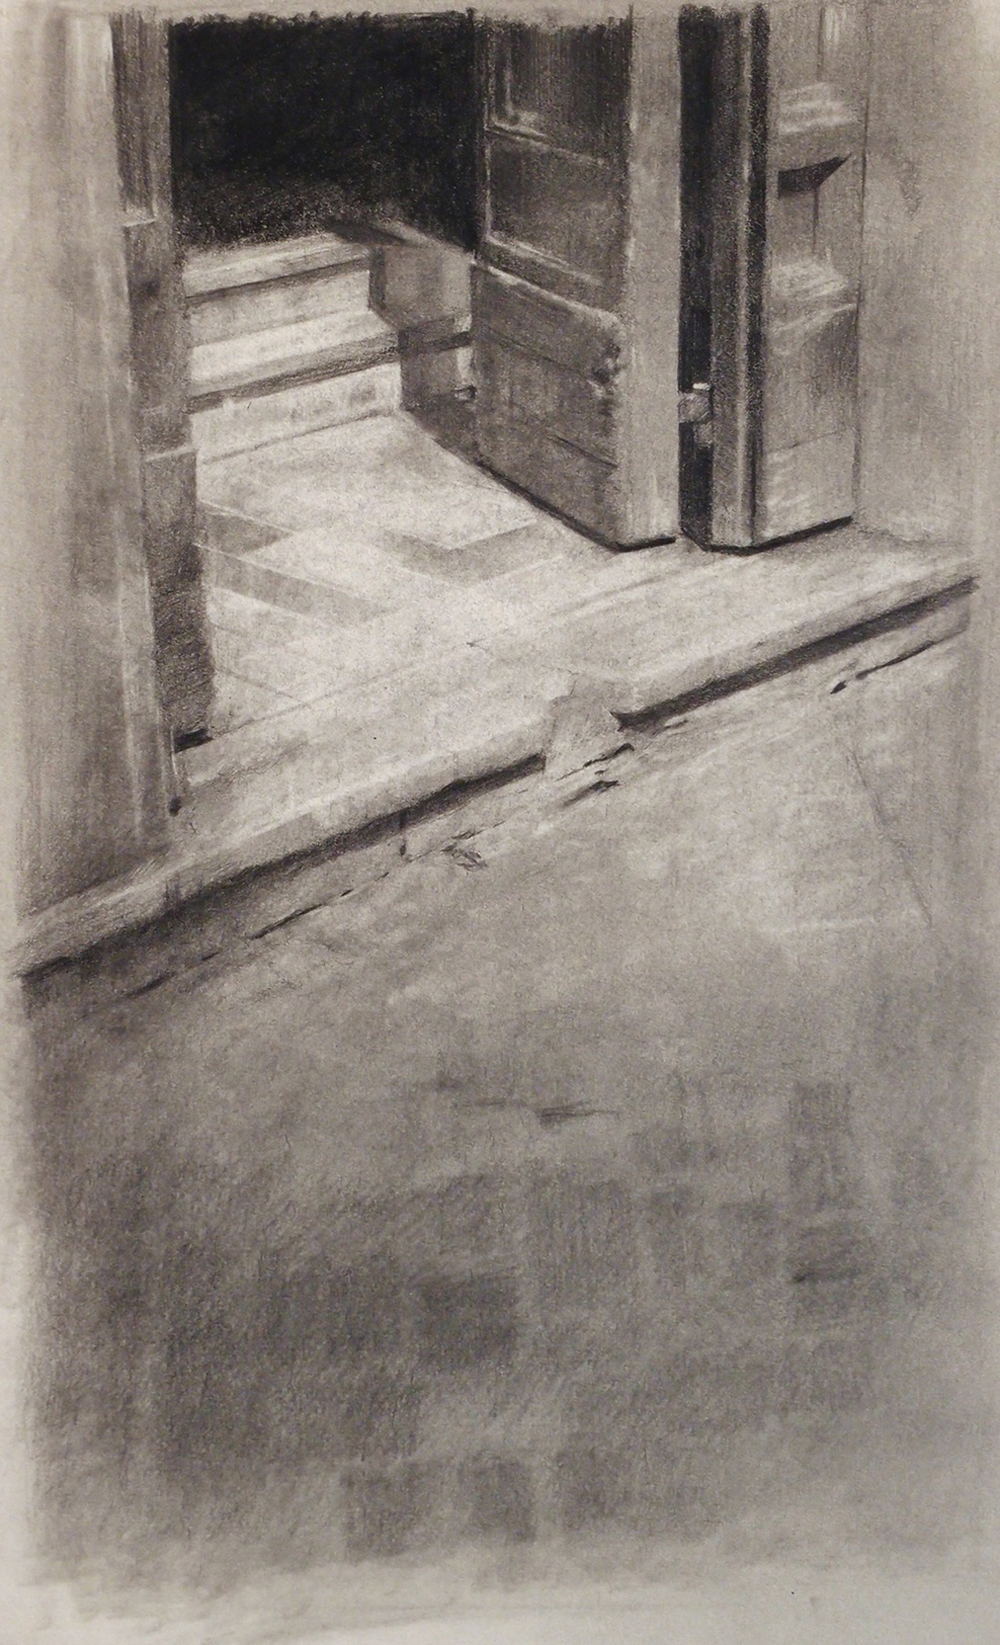 Doorway, Florence, 2014, Pencil on Paper, 18x12